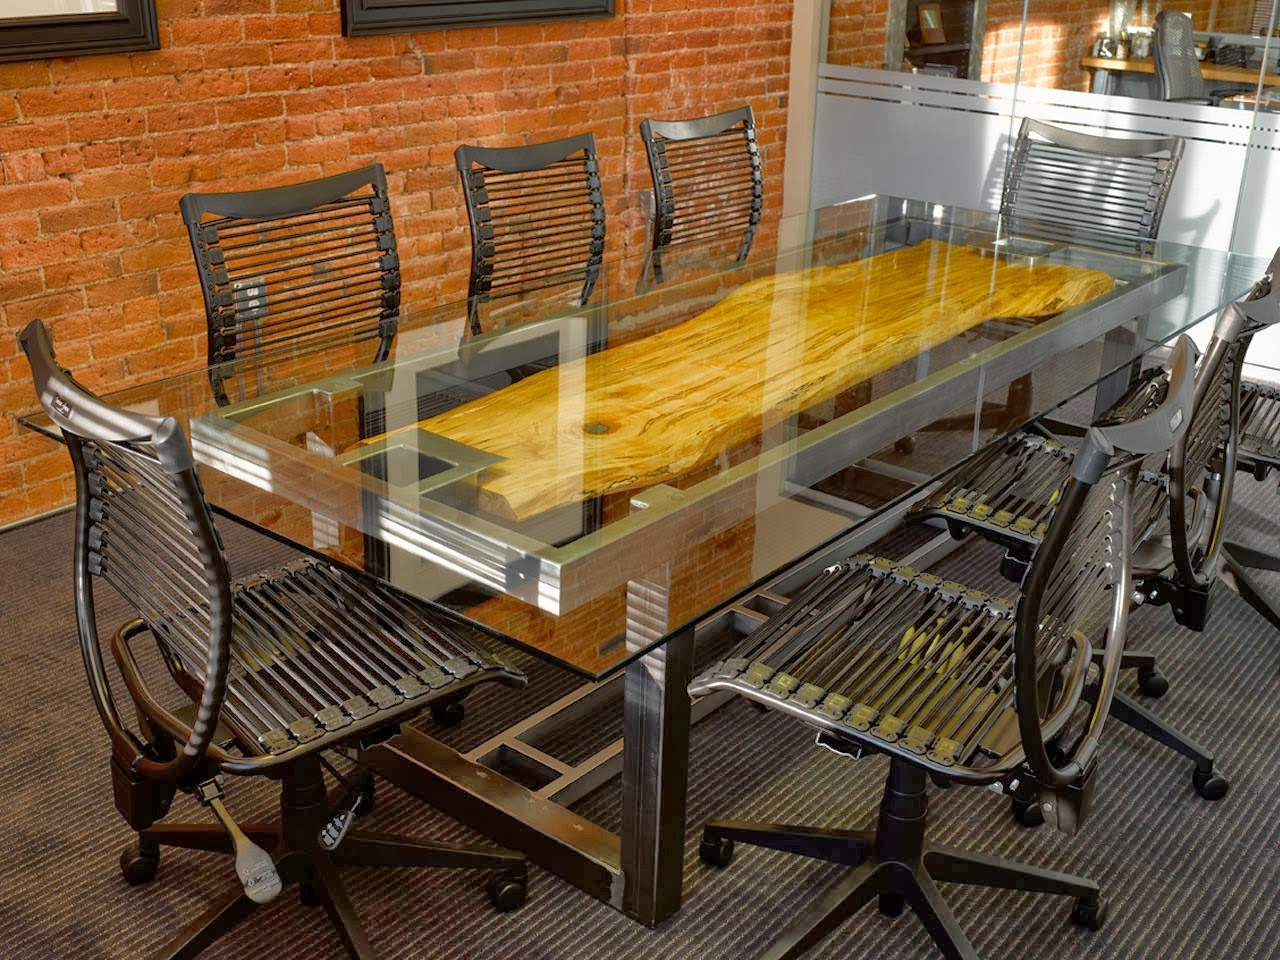 Talk About Chair - T shaped conference table